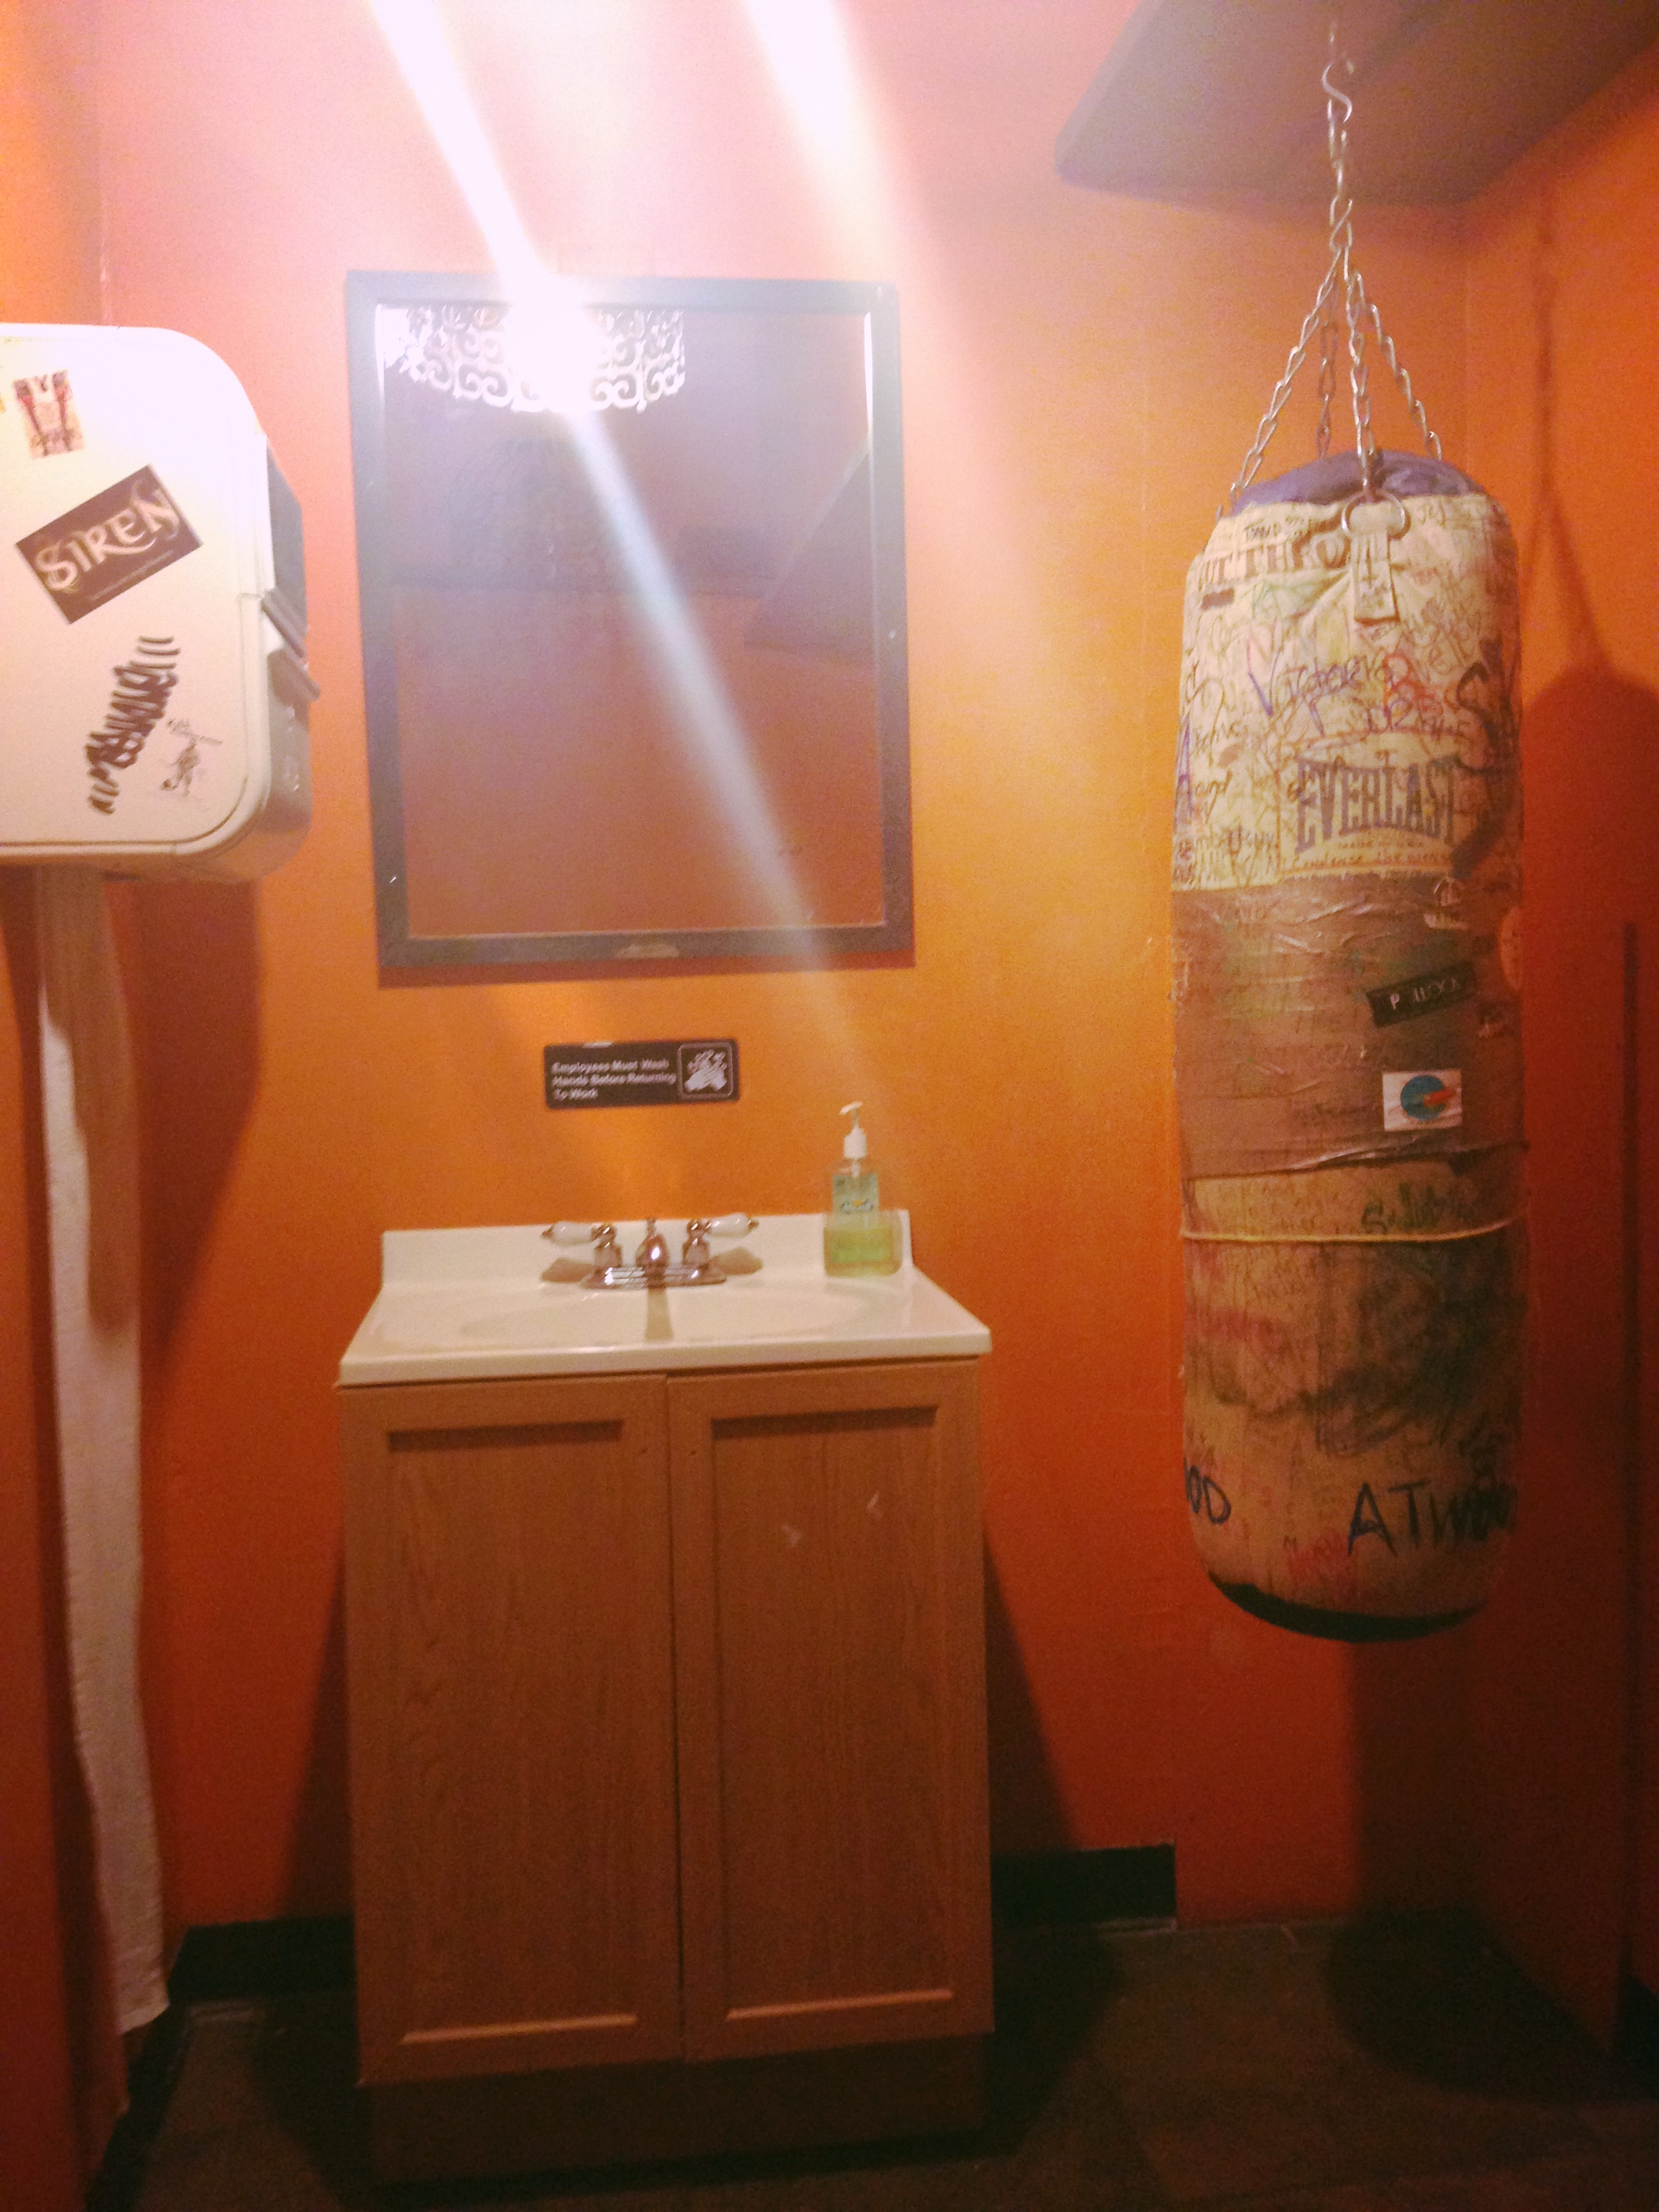 because all women's restrooms should have punching bags...